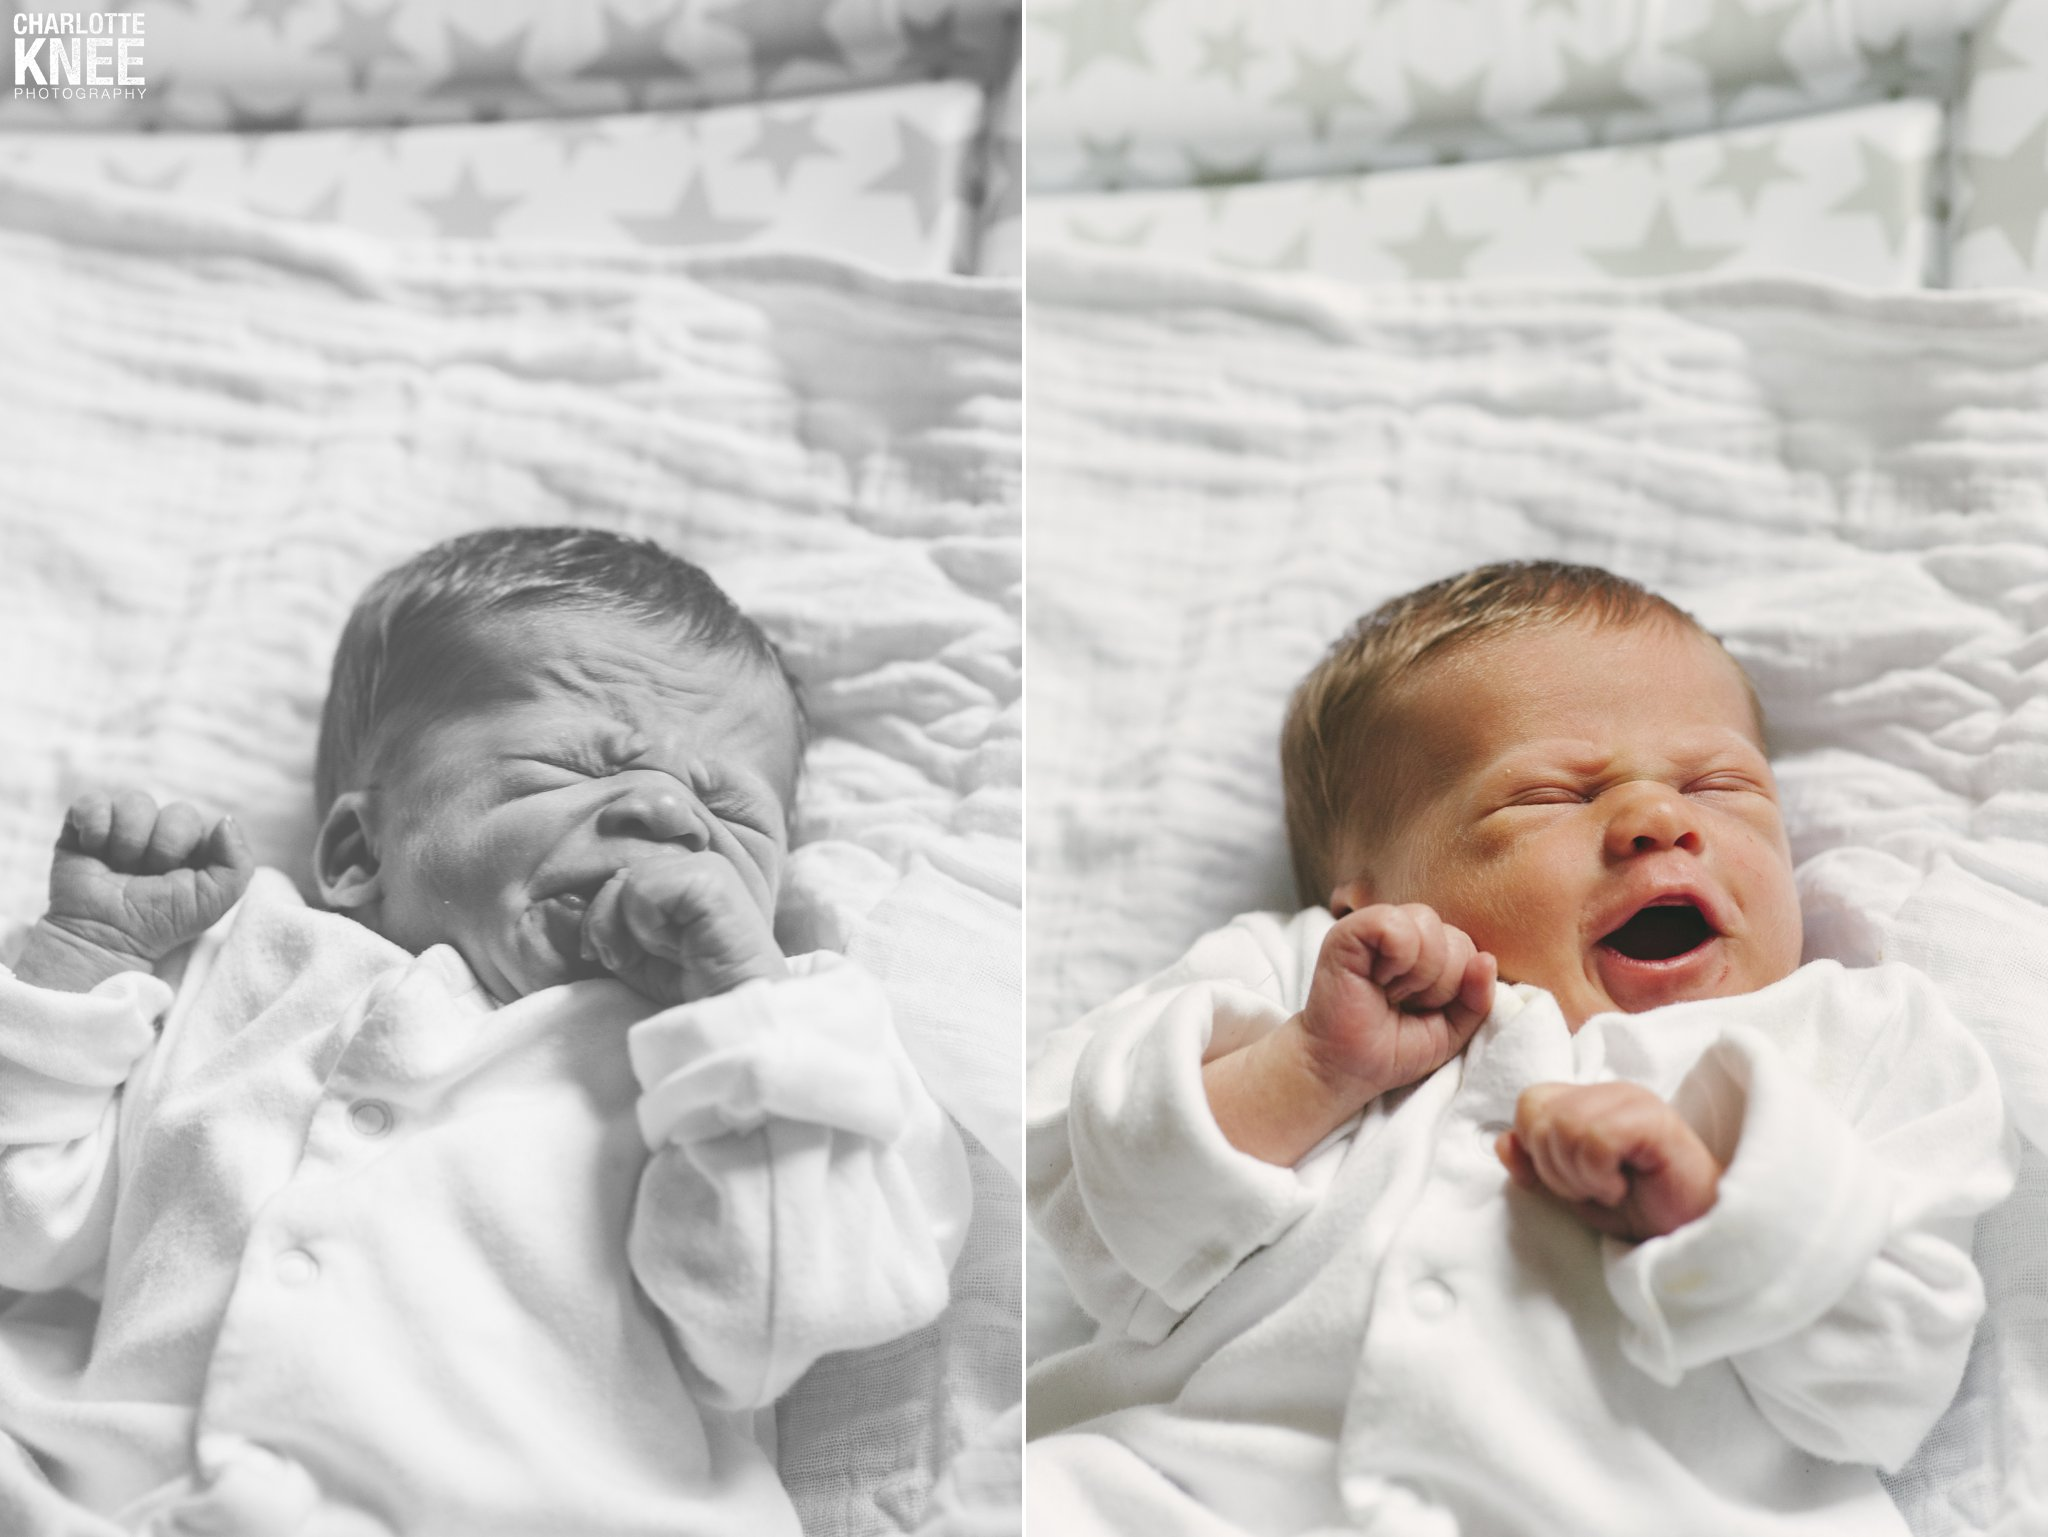 Newborn Photography Copyright Charlotte Knee Photography_0013.jpg